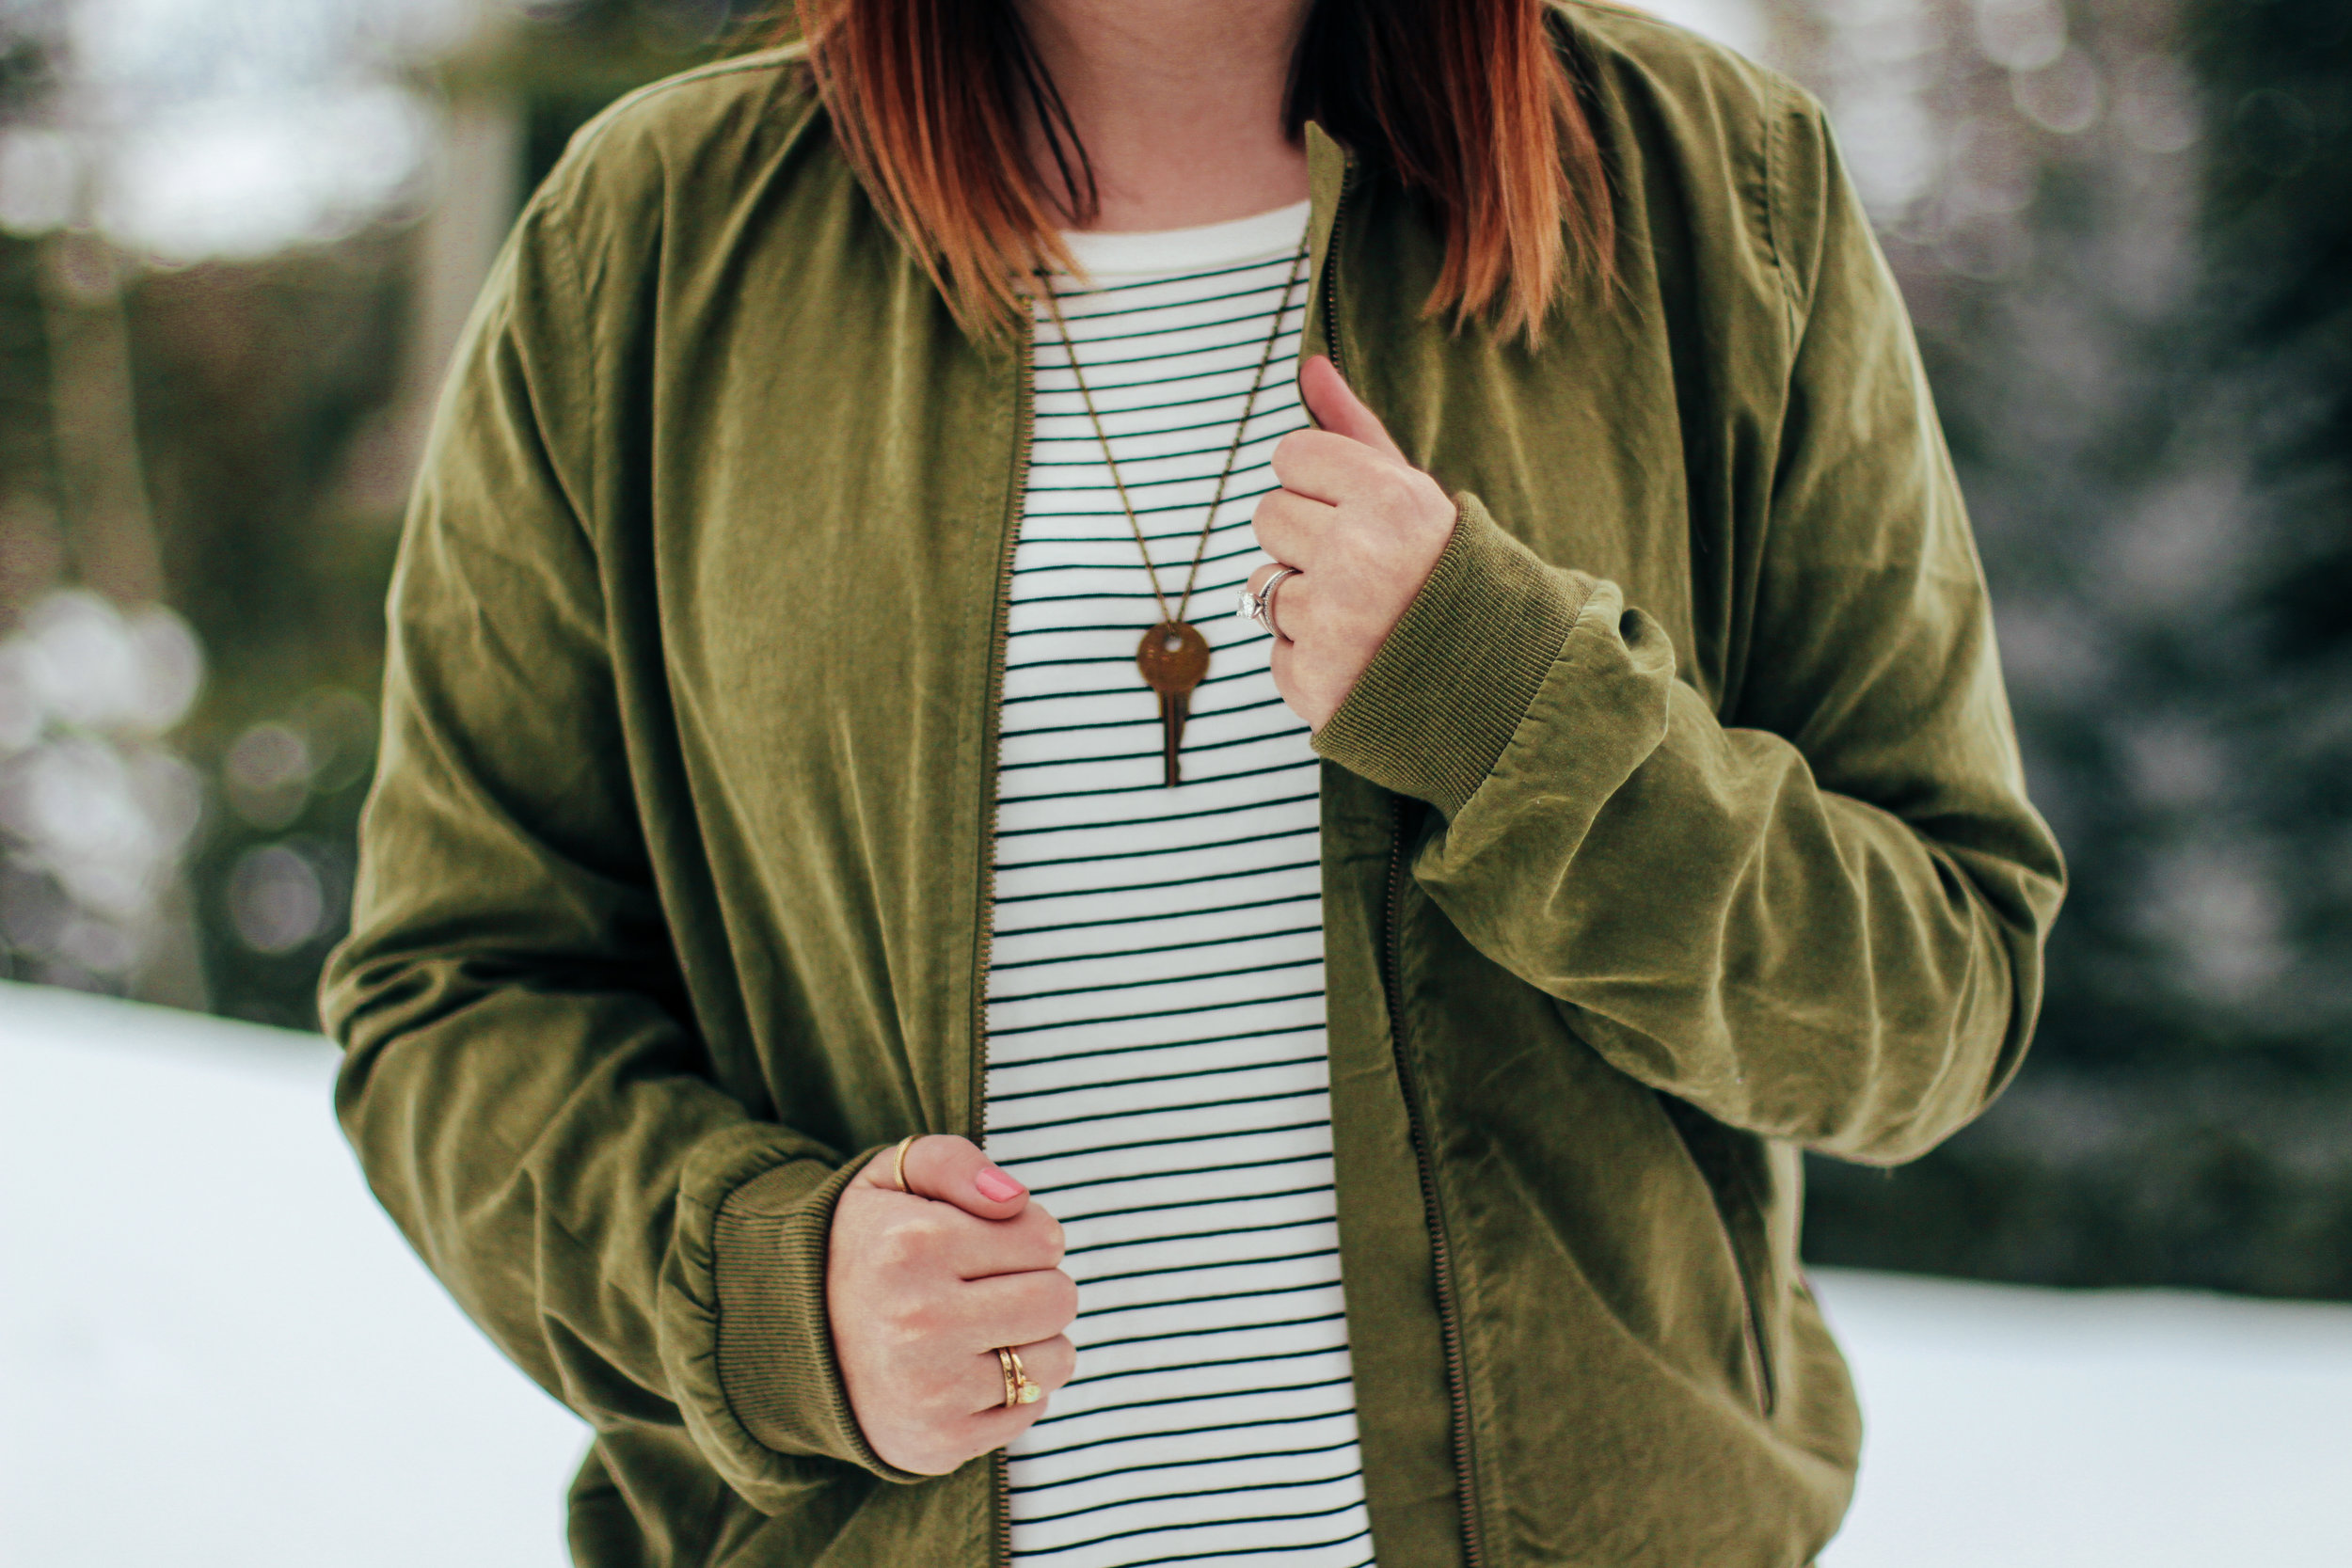 New Fave Striped Tee ft @nordstrom @madewell @thenorthface @piperandscoot @thegivingkeys @altardstate via www.chelceytate.com